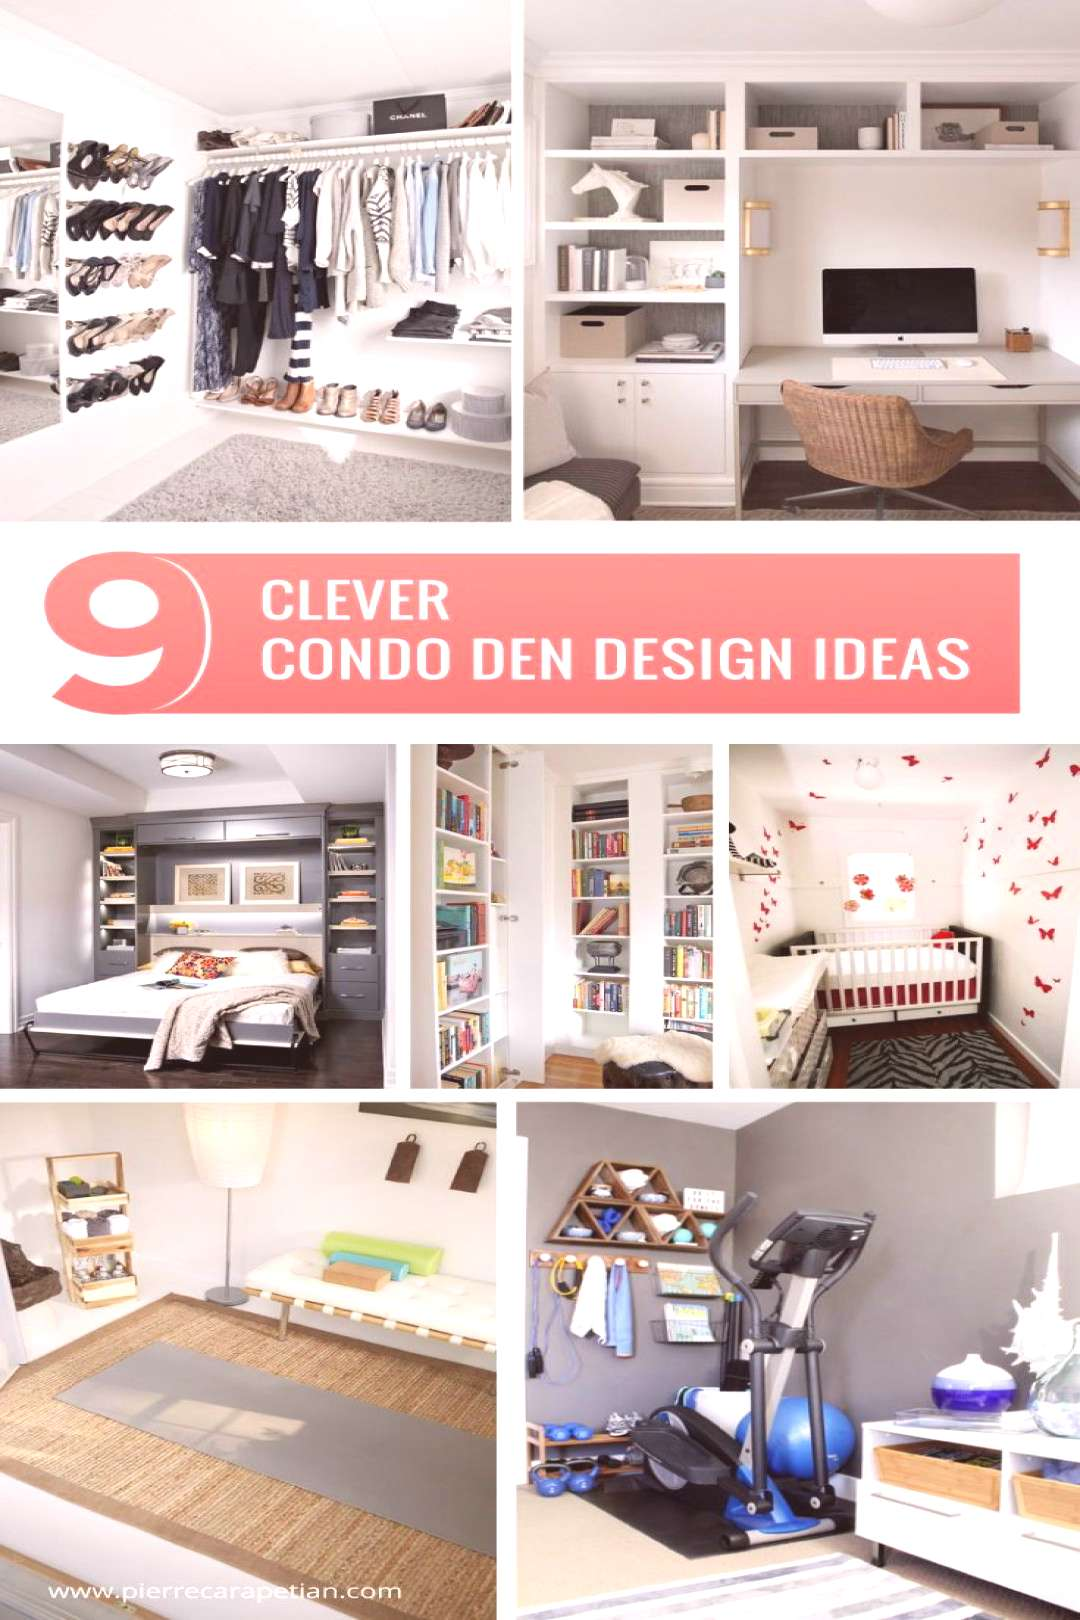 Not all dens are created equal. Get inspired by these 9 clever condo den design ideas to get the mo